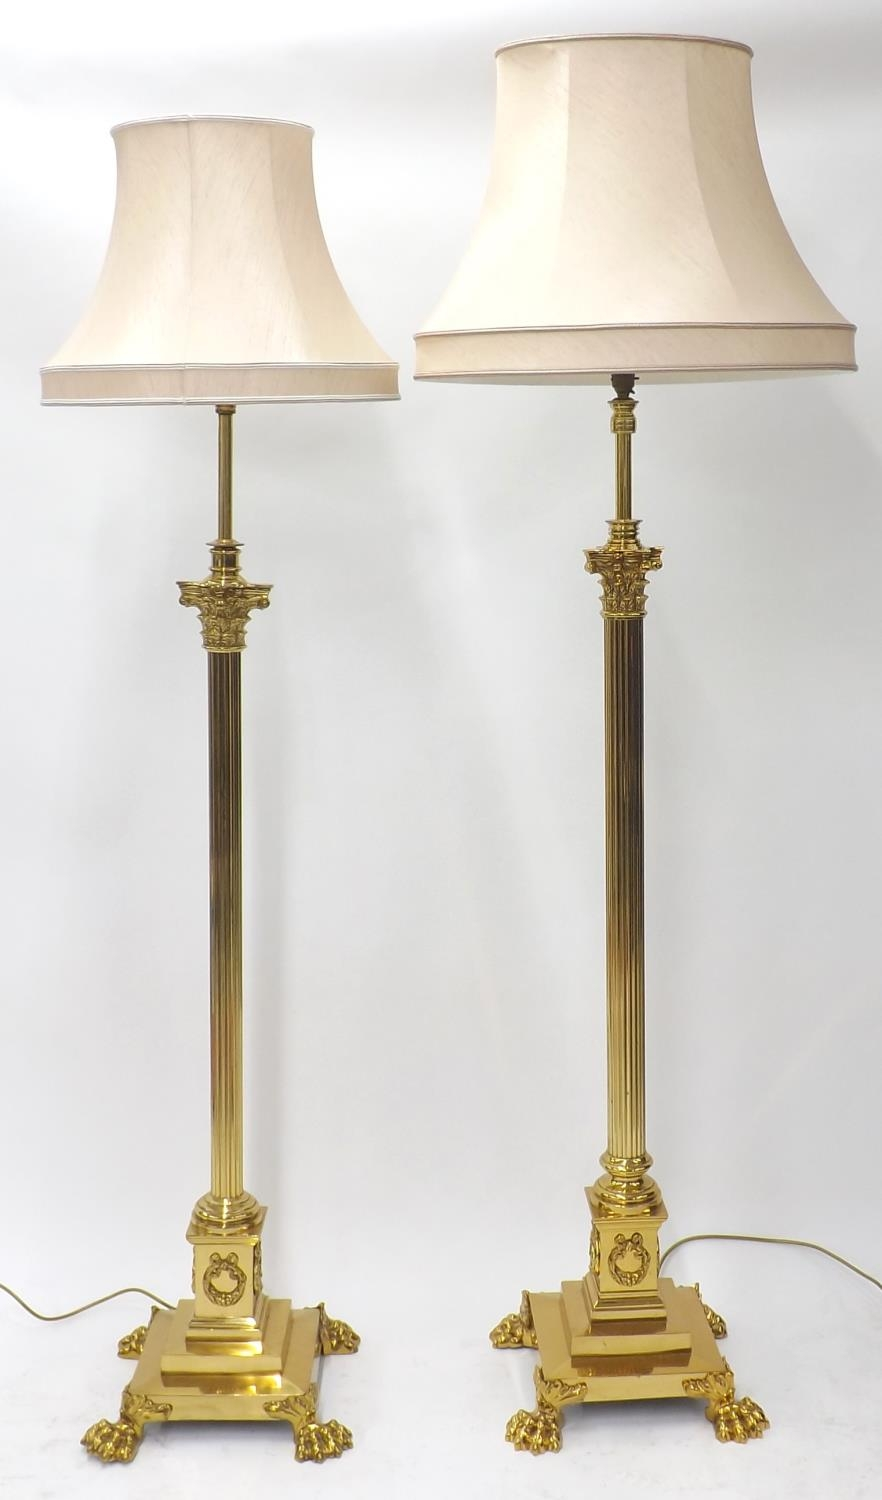 Matched pair of Corinthian column telescopic brass standard lamps with paw feet, with silk shades,